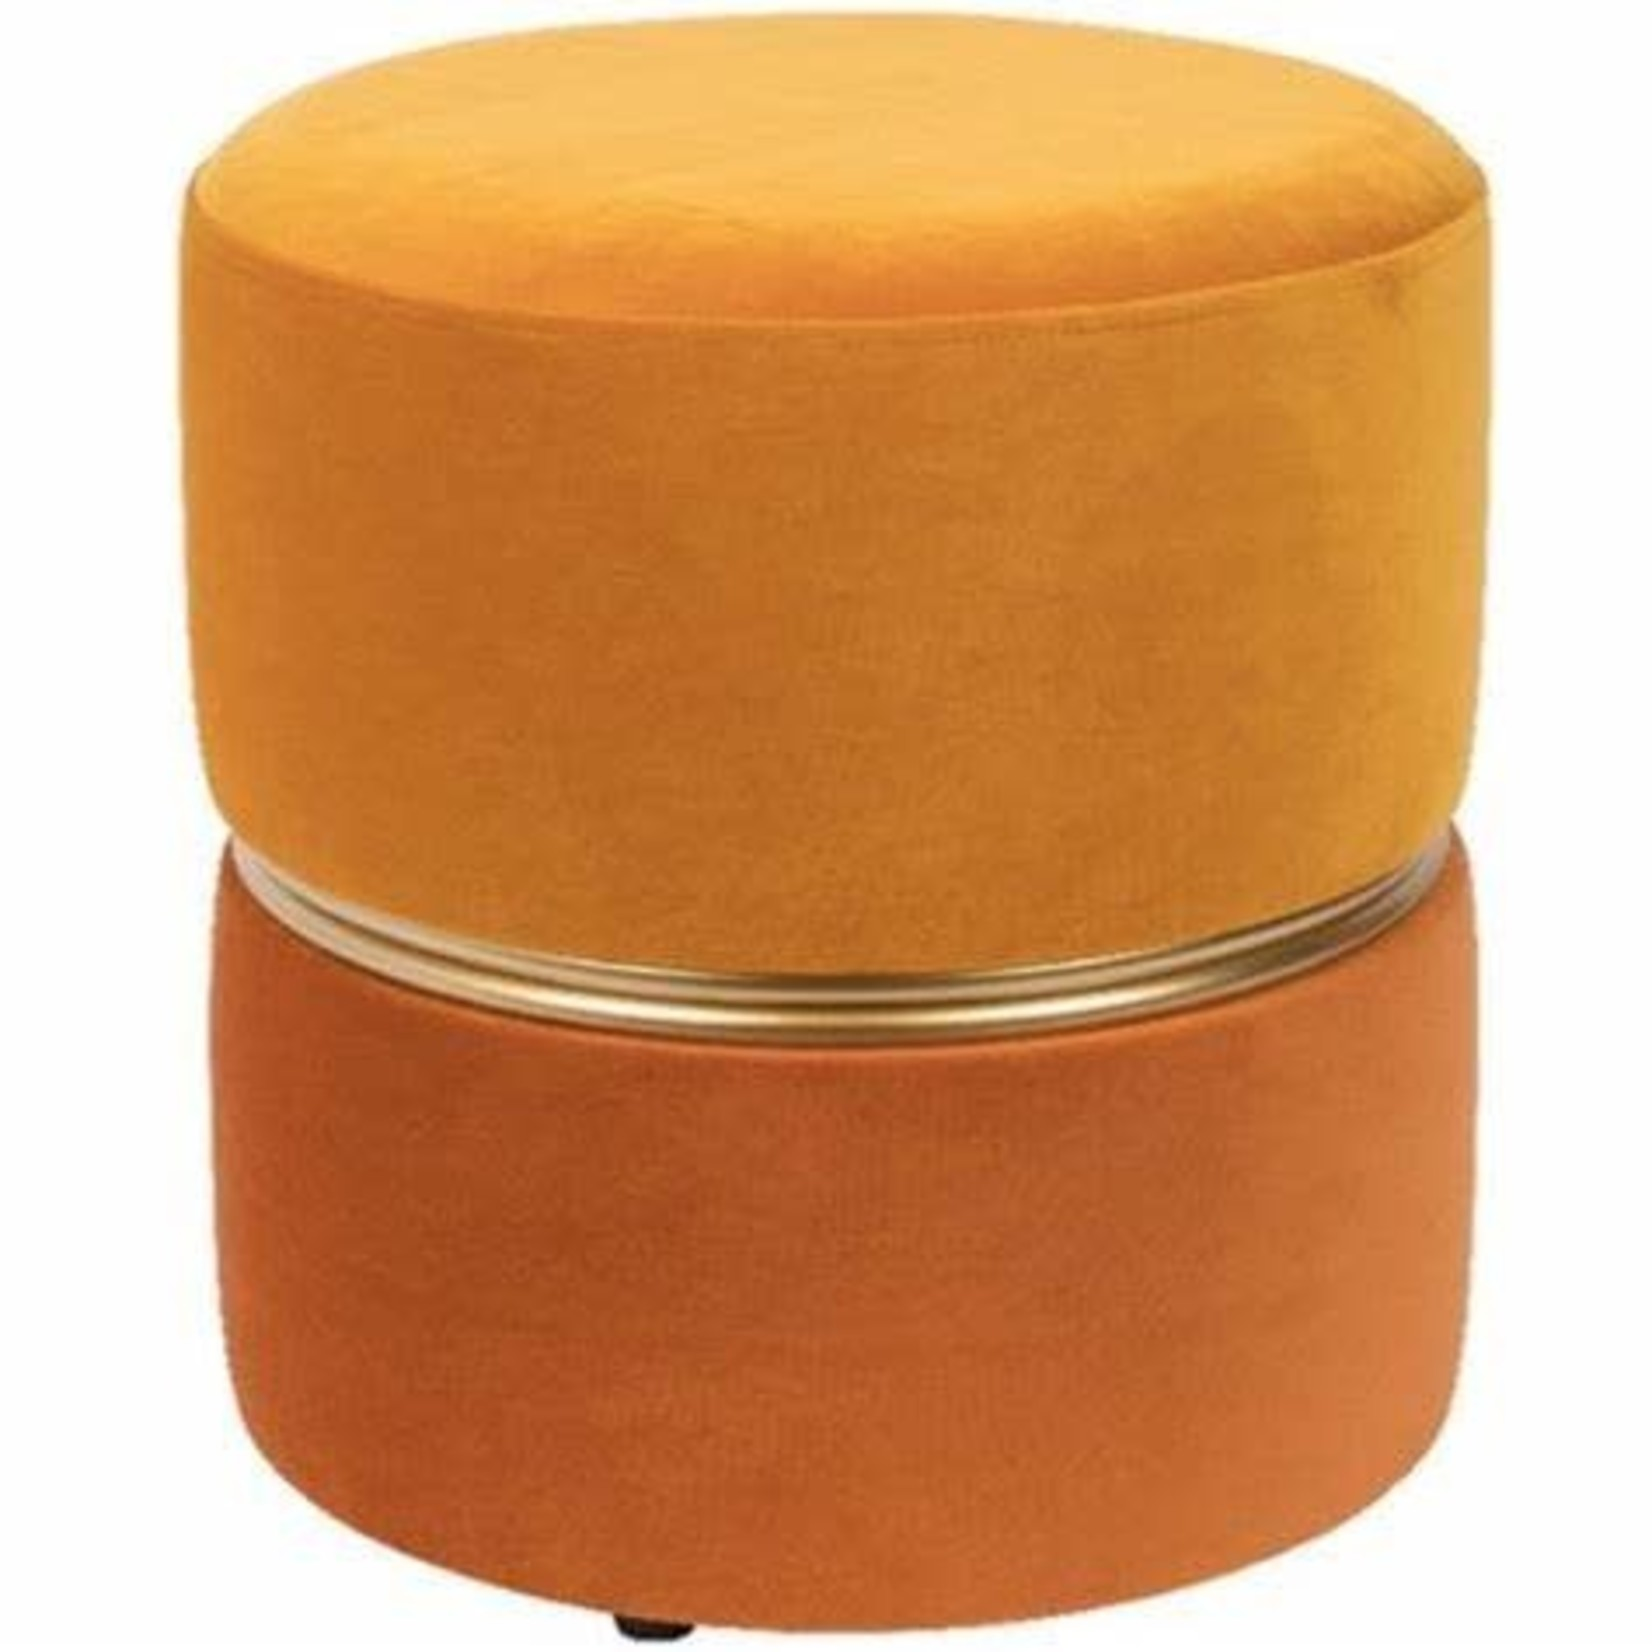 ZUIVER BV Bubbly Stool